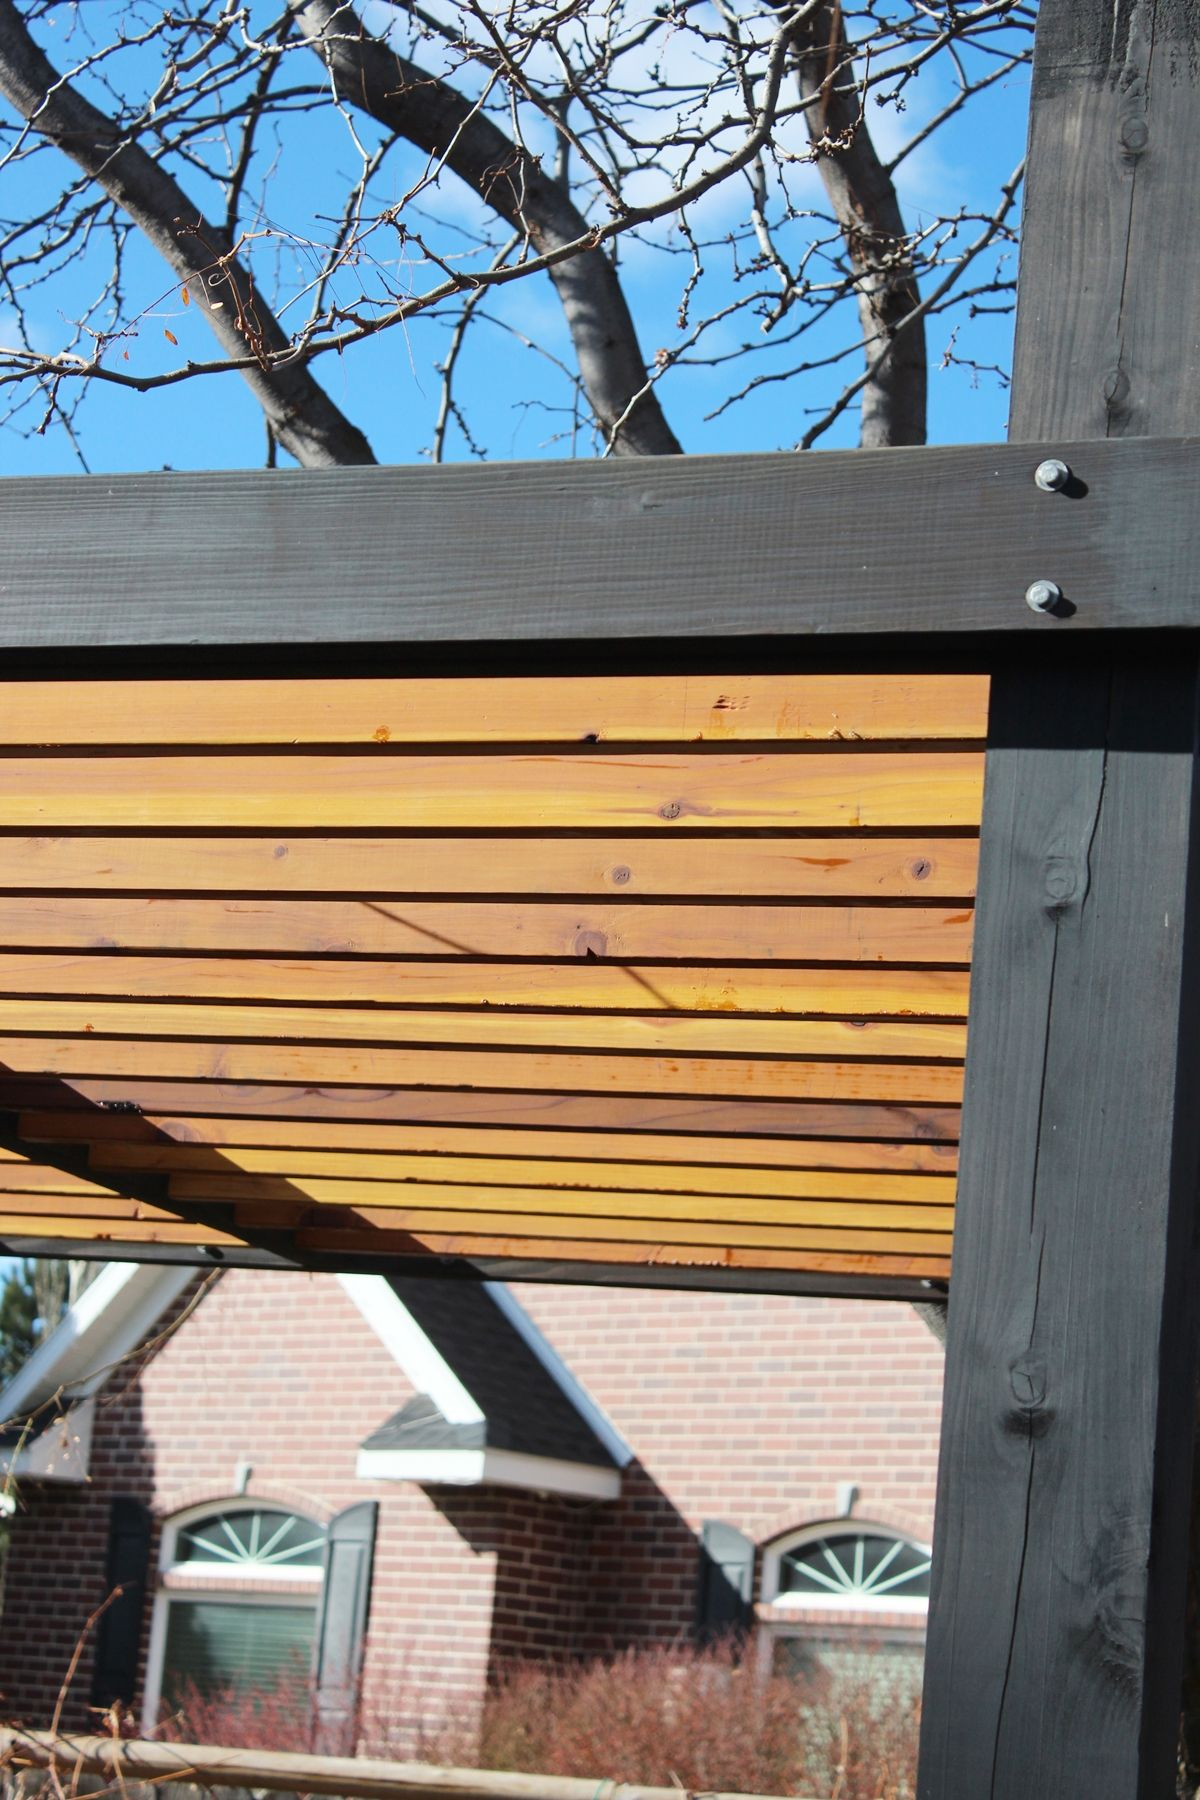 How to Install Pergola Rafters - When all the rafters are installed